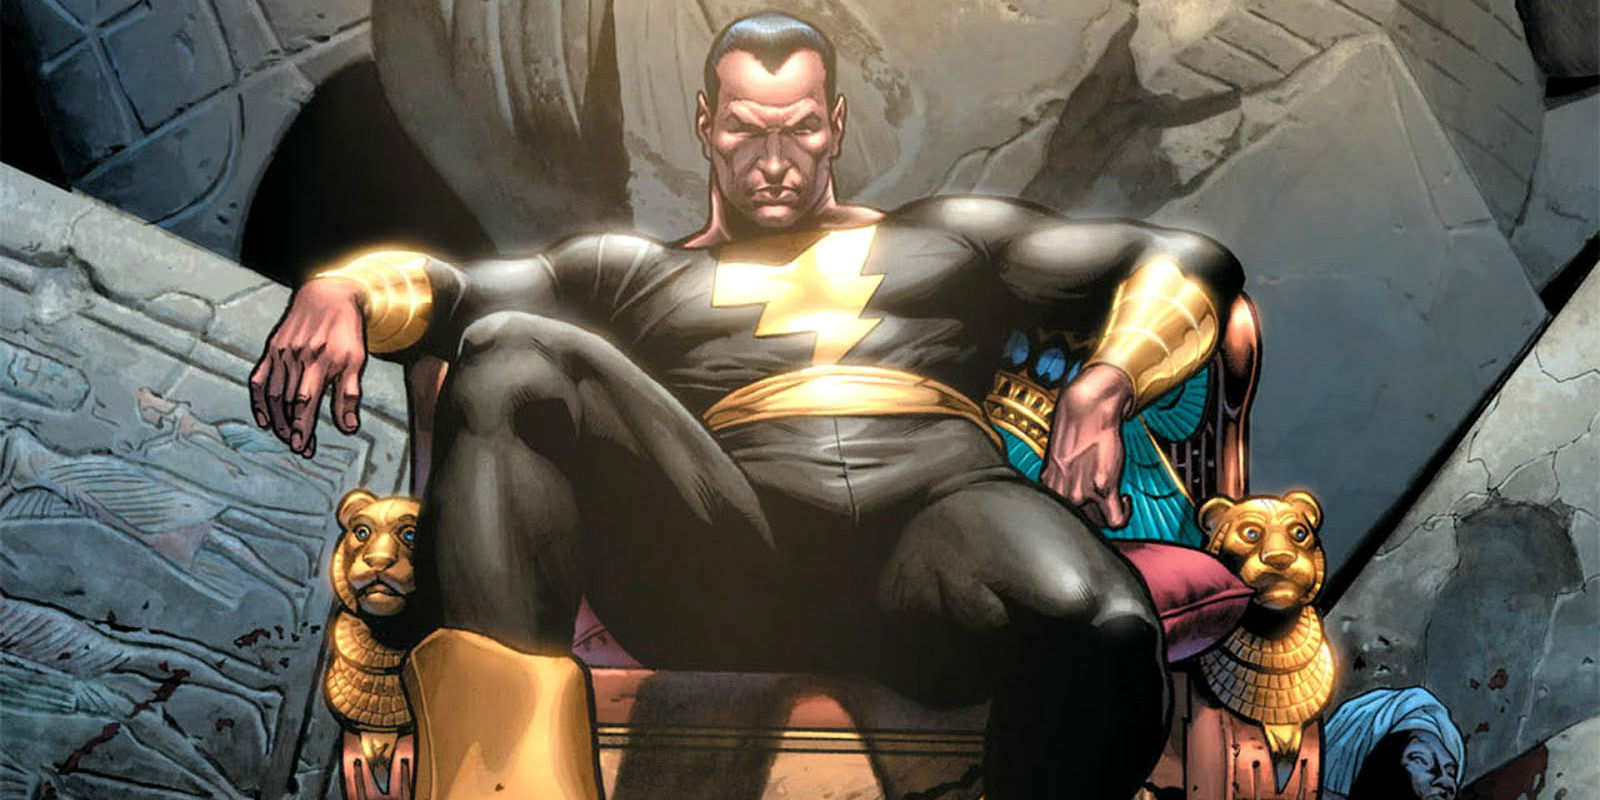 Black Adam from DC Comics Shazam: What The Rock Could Look Like as Black Adam